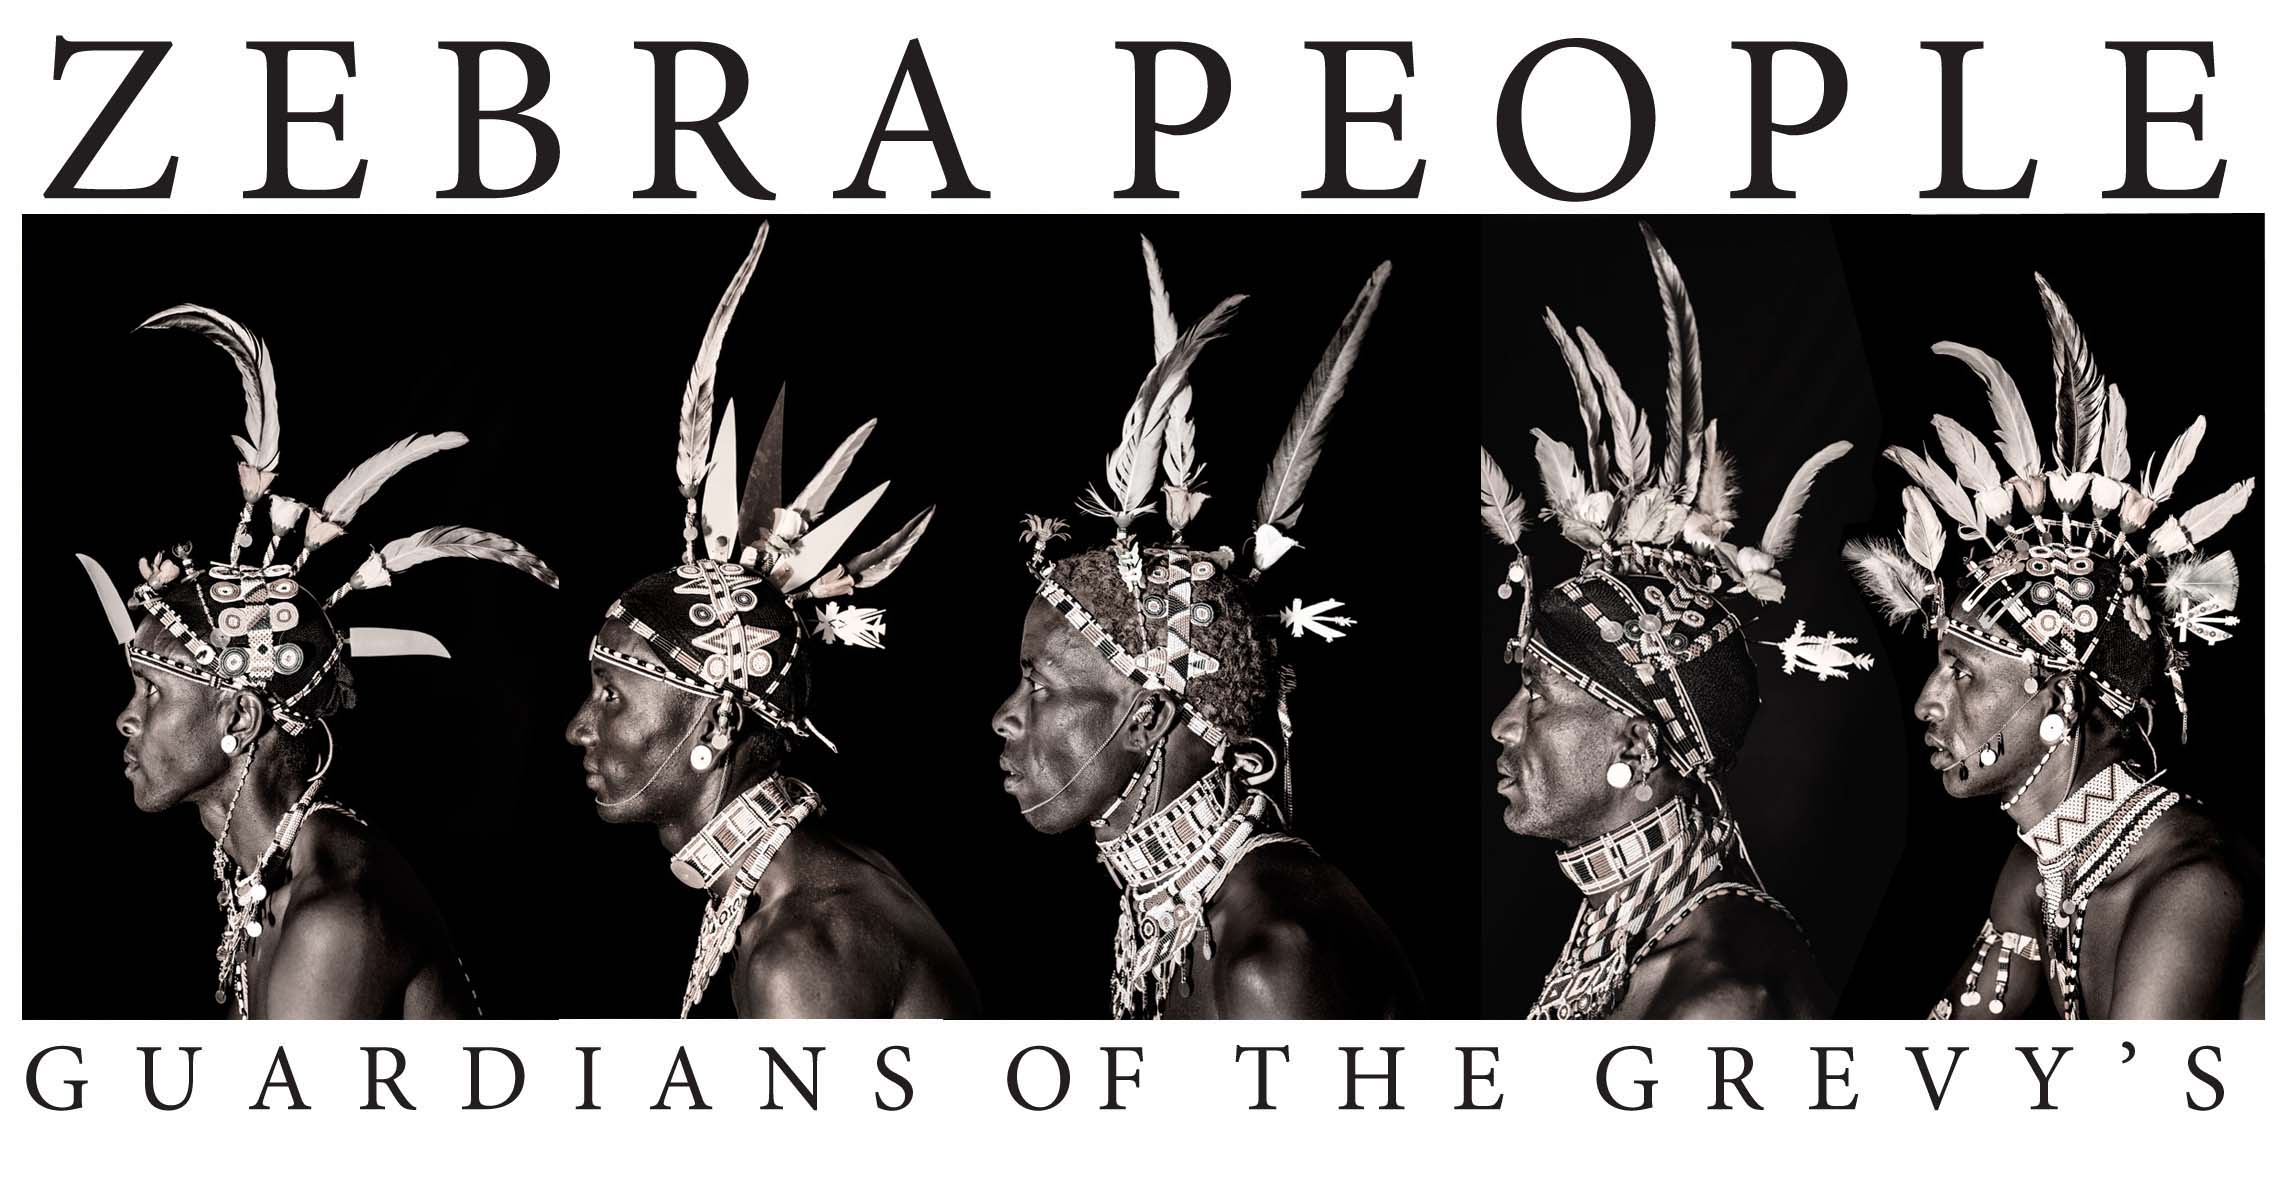 ZEBRA PEOPLE IS A TOURING ART EXPERIENCE FROM A COMMUNITY WHO ARE BEARING WITNESS TO THE HEROIC LAST STAND OF AFRICA'S MOST ENDANGERED ICON, THE GREVY'S ZEBRA.IT IS A STORY ABOUT INTELLIGENT CO-EXISTENCE.IT'S ALSO A STORY OF COOPERATION, HERITAGE AND COMMUNITY, TOLD IN PART BY THE COMMUNITY ITSELF.